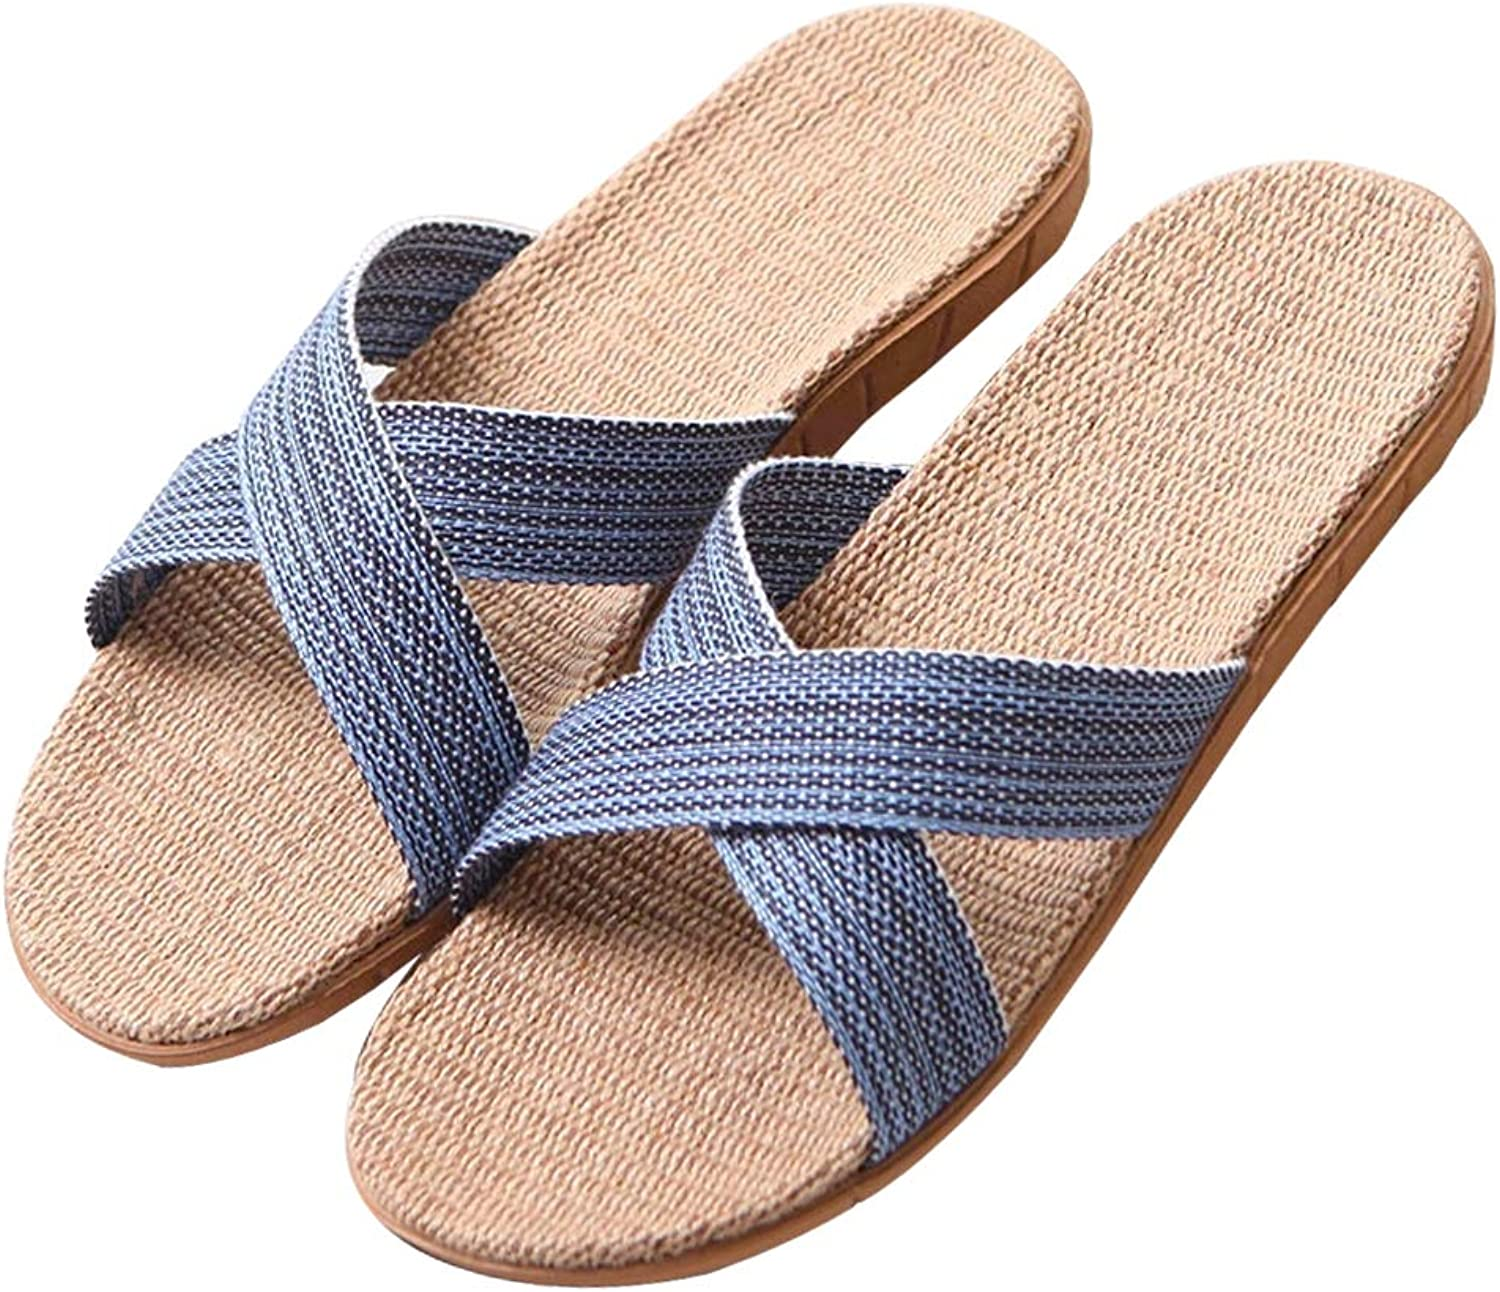 Anddyam Unisex Home Slippers Flax Men and Women House Slipper Open-Toe Breathable